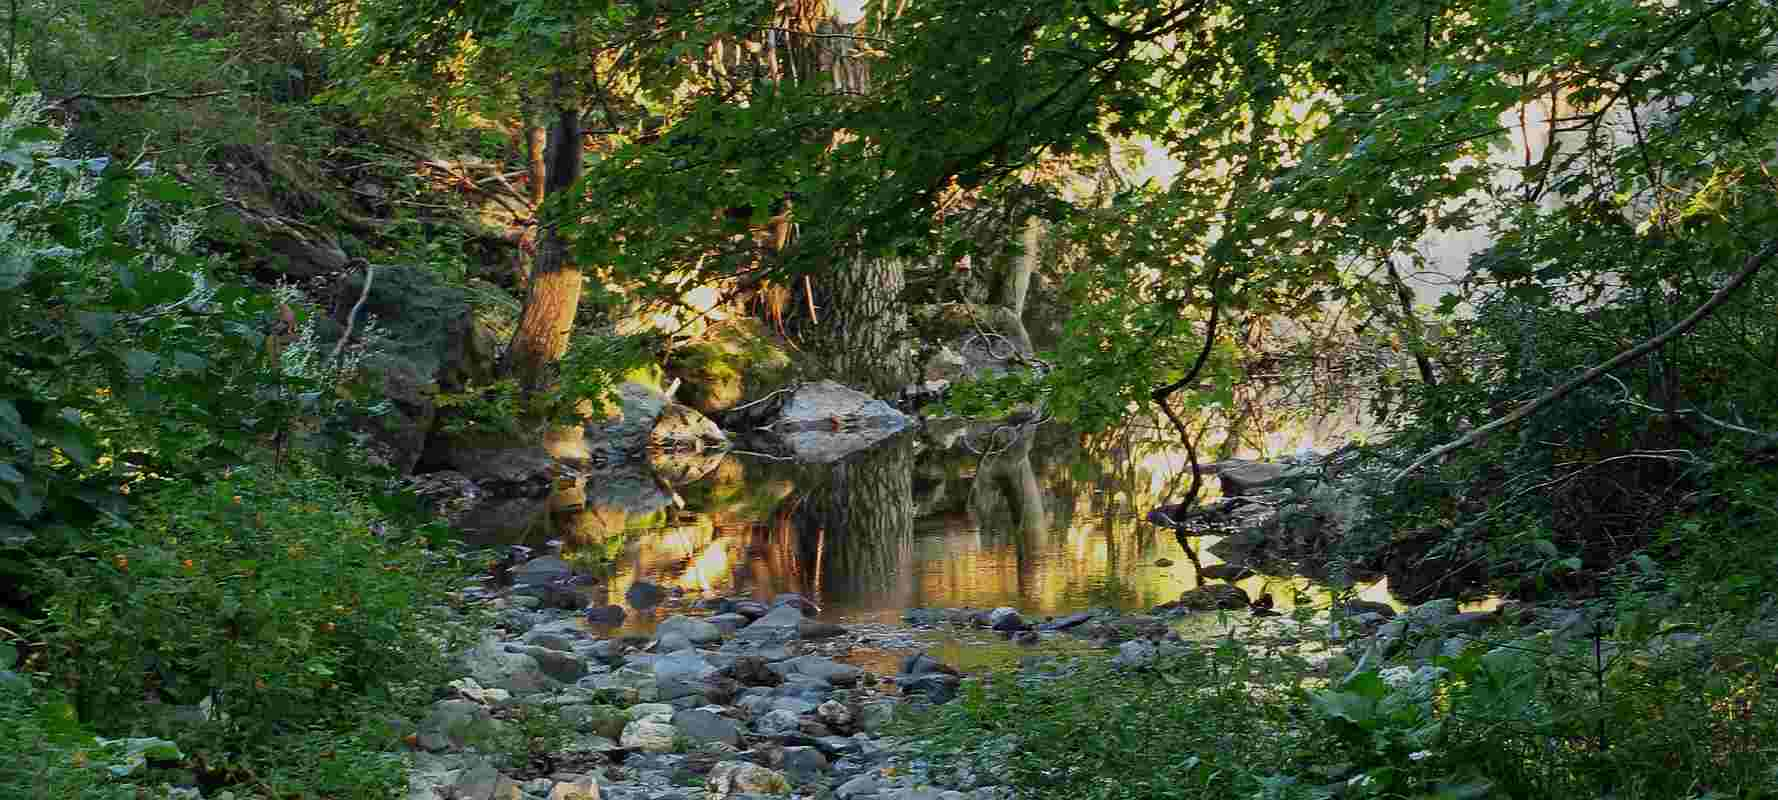 stream ecology intro Ecology comes from the greek words oikos (house or place where one lives) and logos (the study of) it is the study of the earth and its inhabitants specifically, ecology is defined as the study of the interactions among organisms, and their interaction with the nonliving parts of their environment.